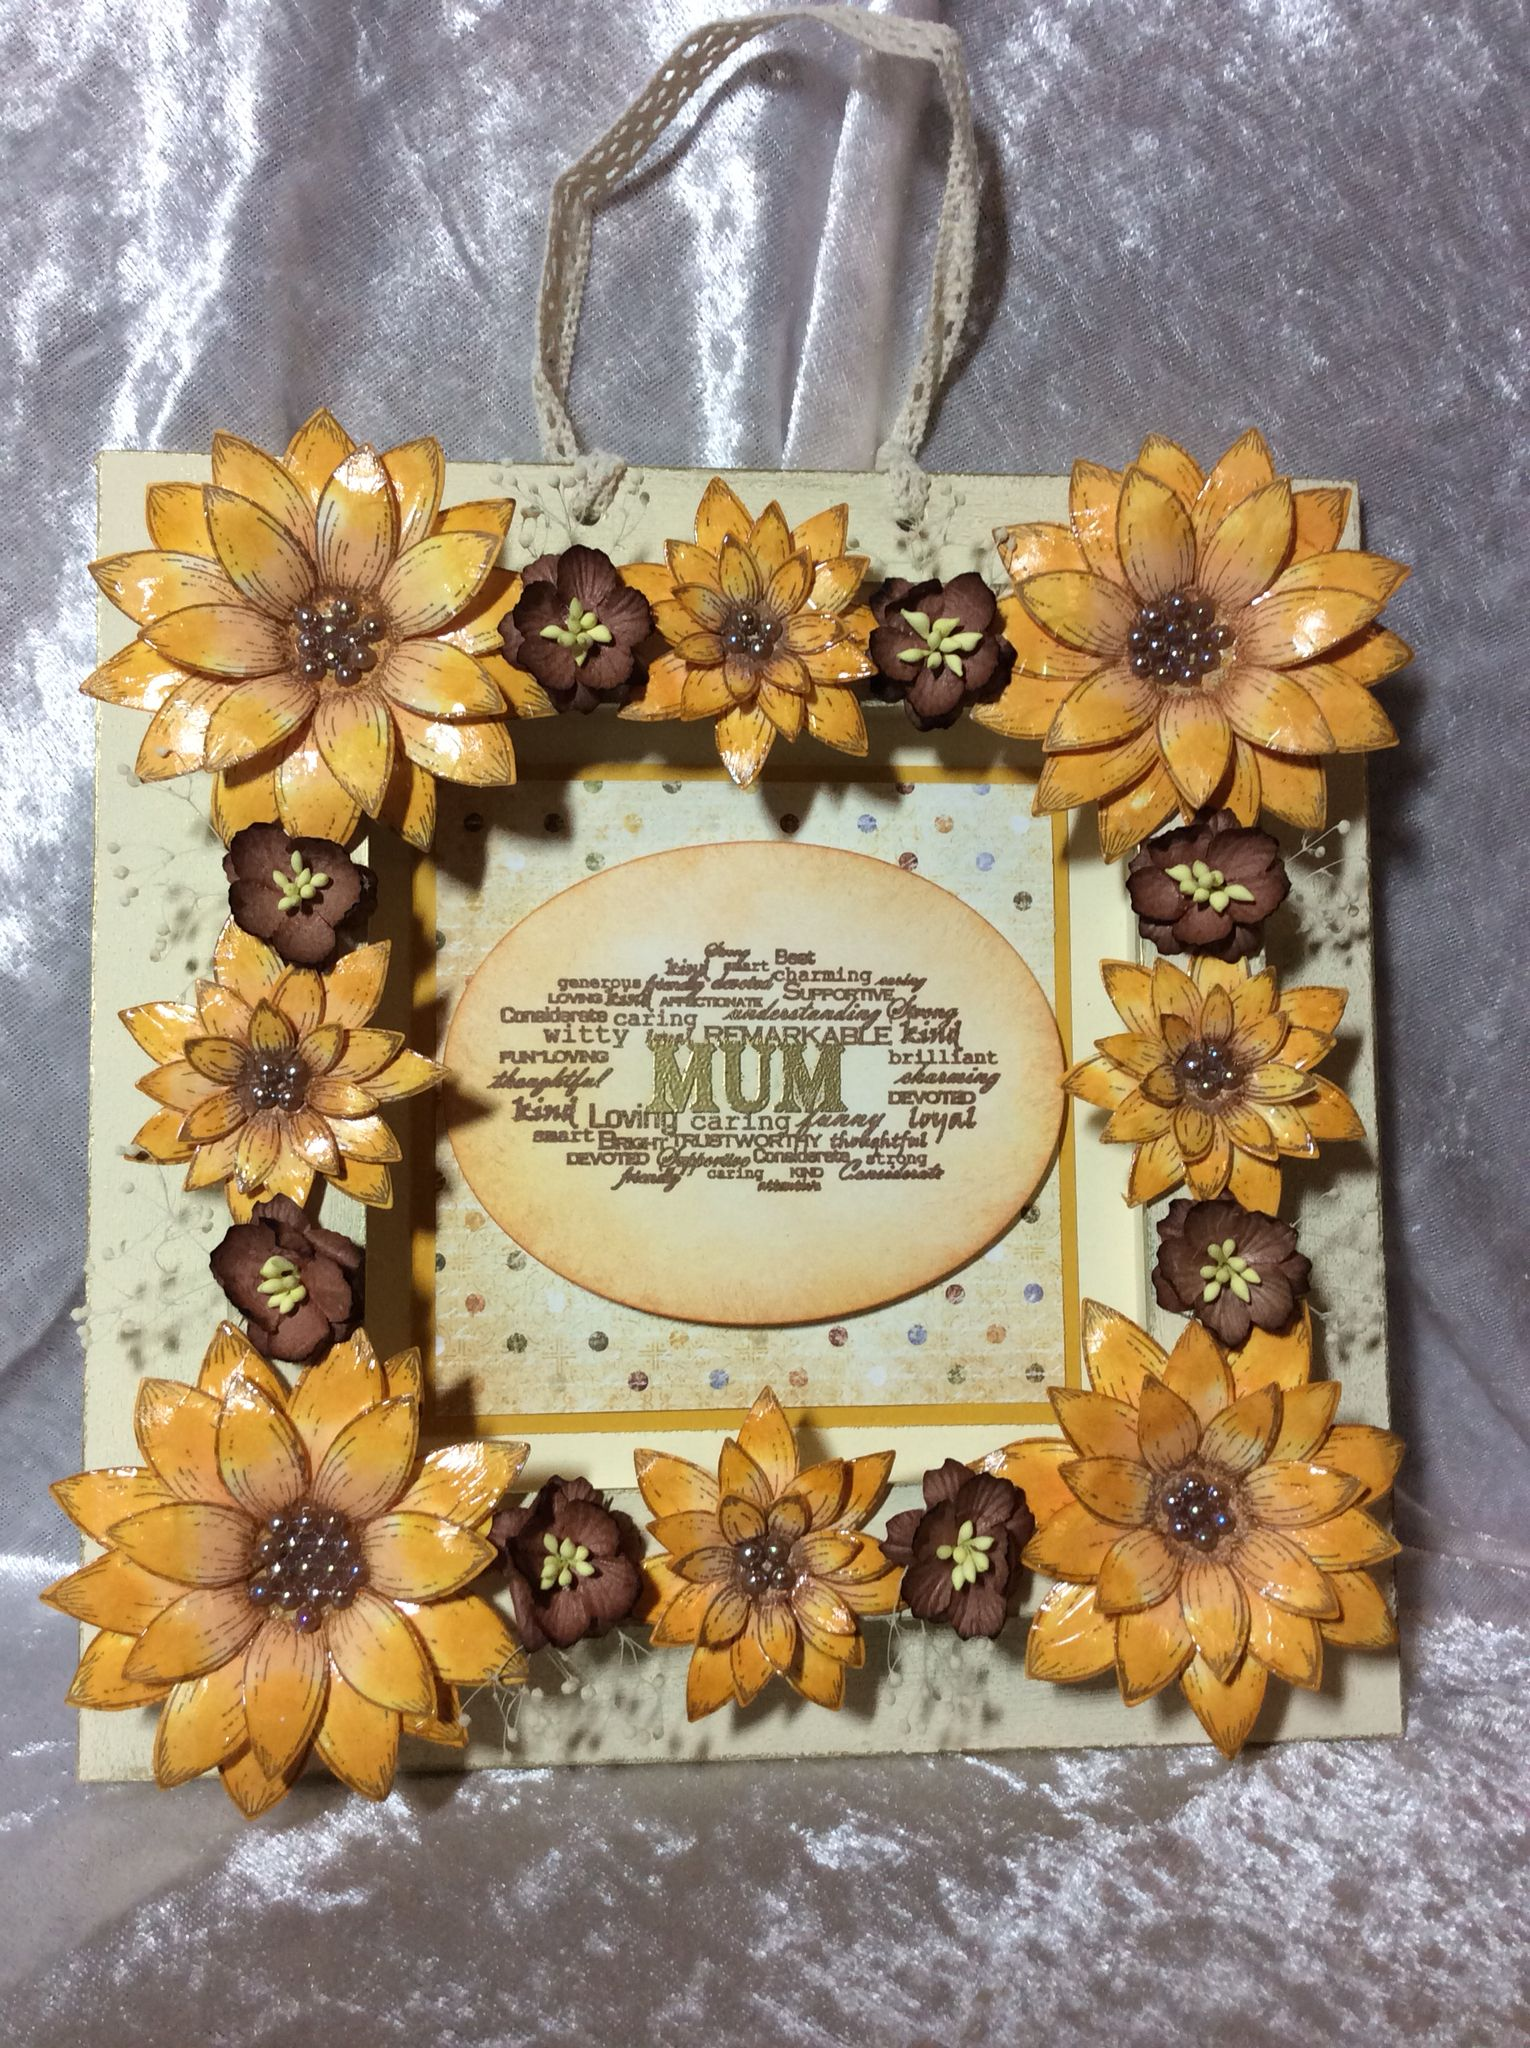 Anna Marie Designs frame, decorated with paper flowers and sunflowers made using Heartfelt Creations sunflower stamp and die set. Centre made from Heartfelt Creations sunflower collection paper and stamps from Anna Marie Designs 'For Her'. Frame painted with American Decor chalky paints. This idea